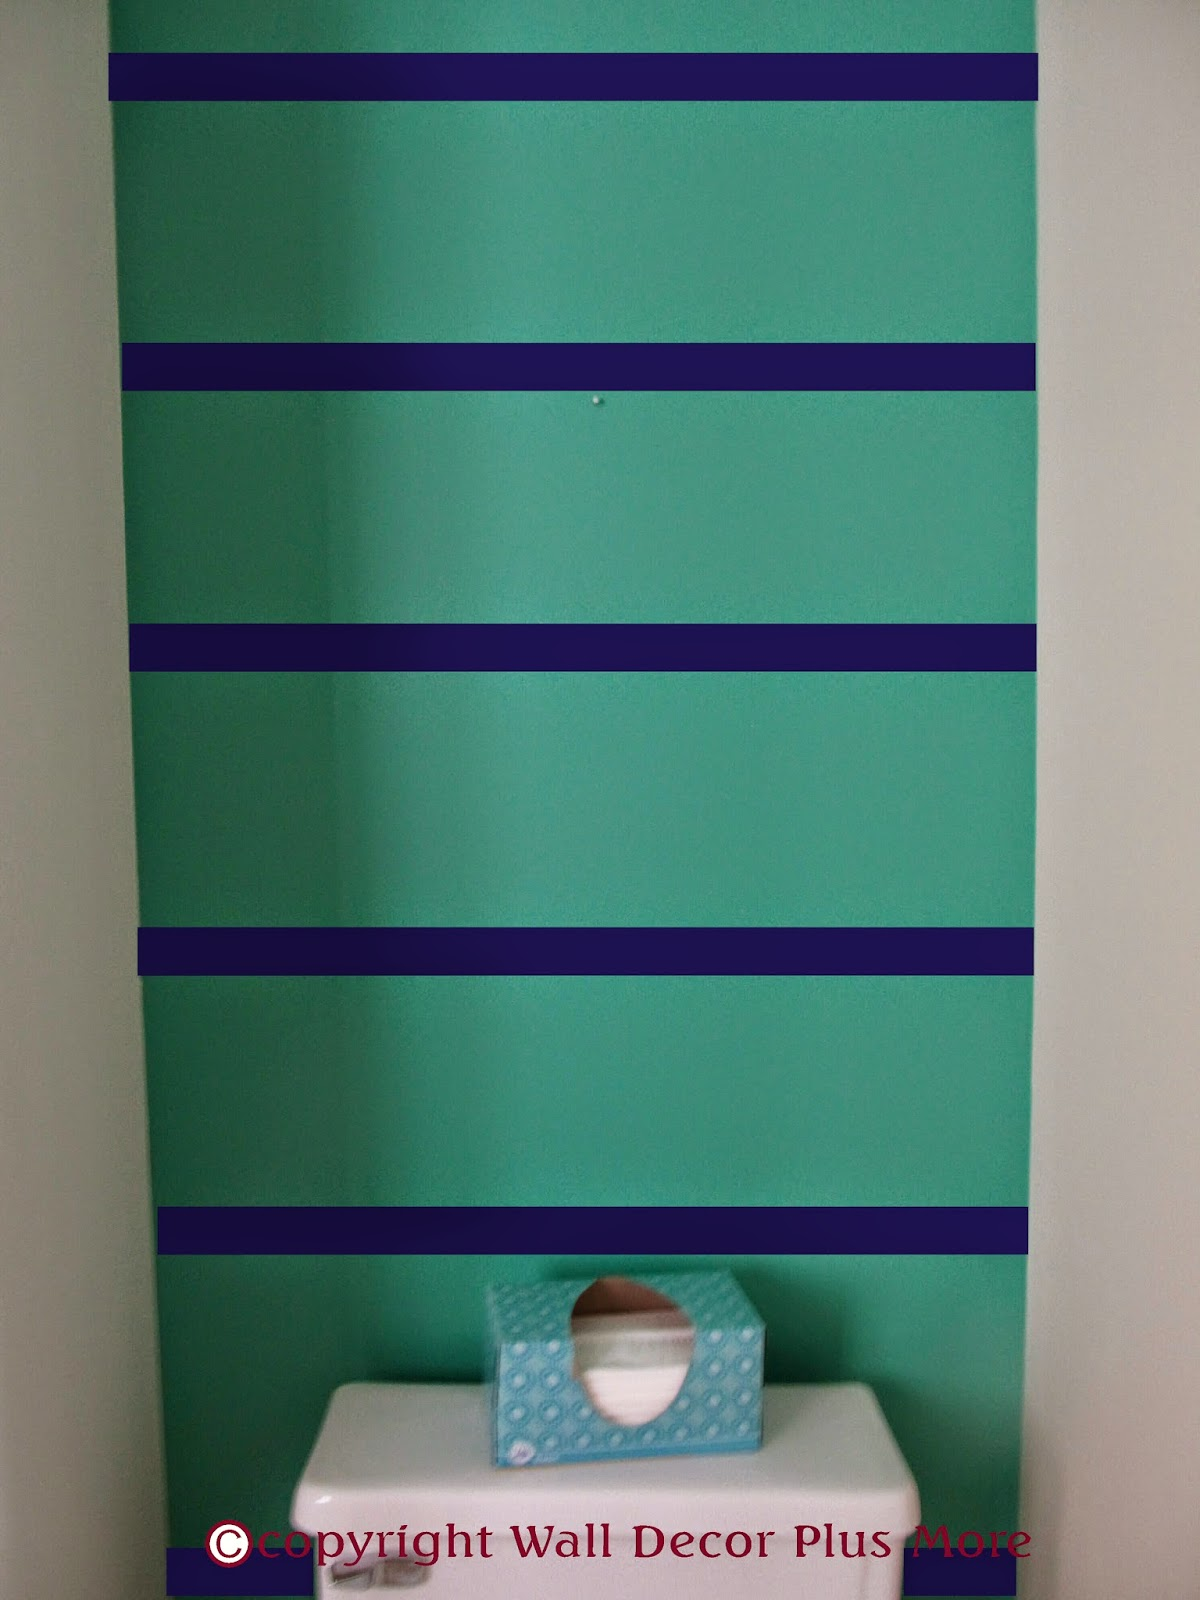 Wall Decor With Stripes : Decorating with wall vinyl how to apply sticker stripes